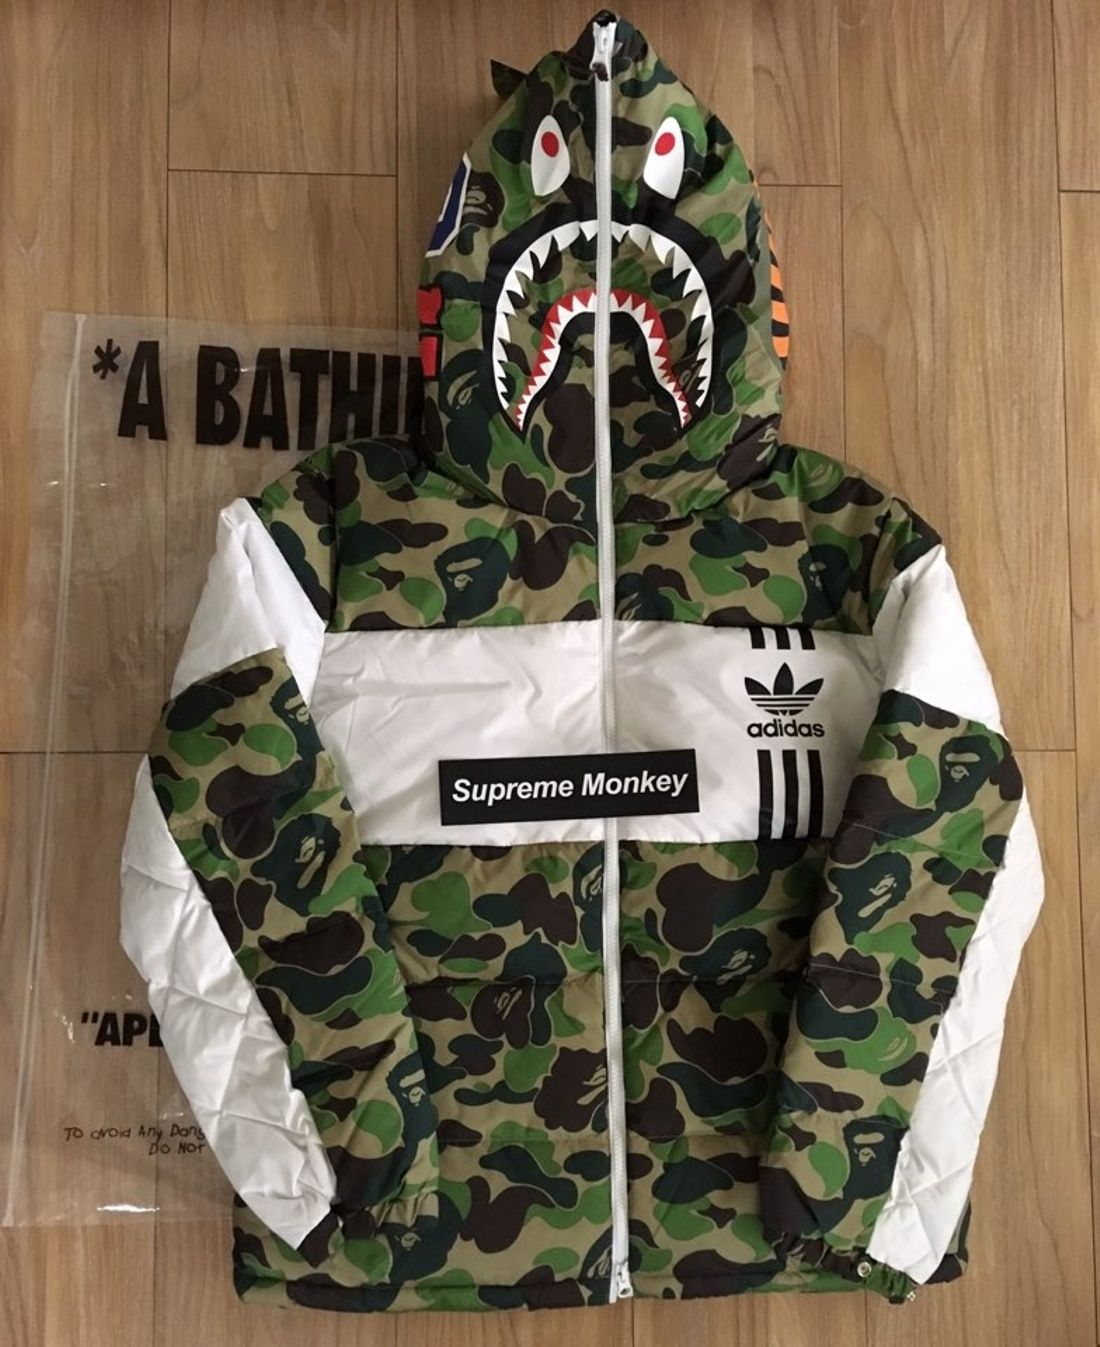 Down Size X Grailed Bape Adidas M1300 Jacket Shark f6m7gbvIyY